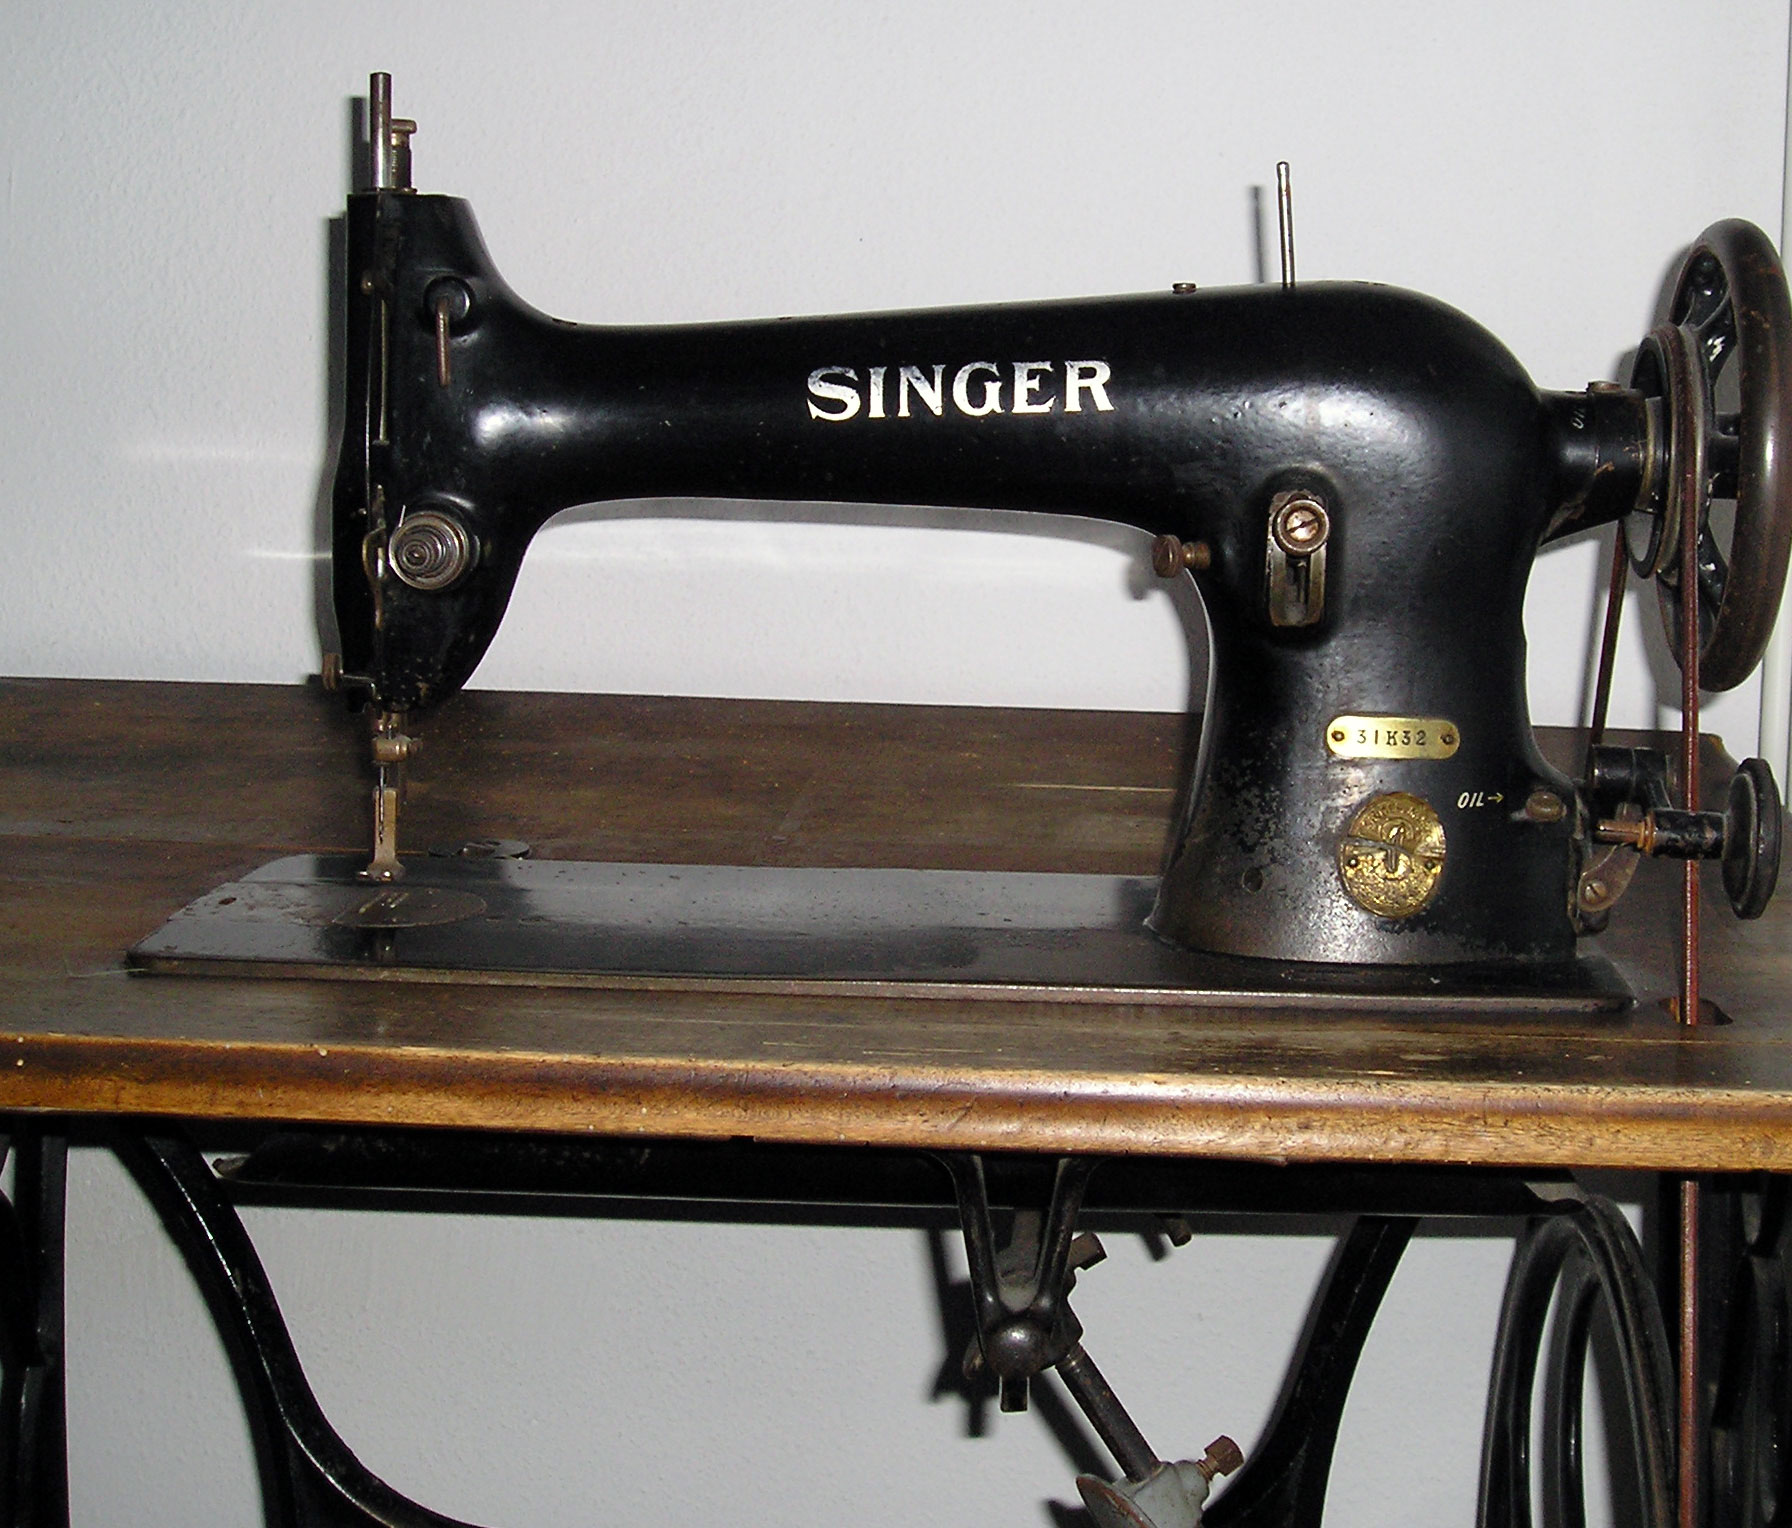 singer promise sewing machine manual